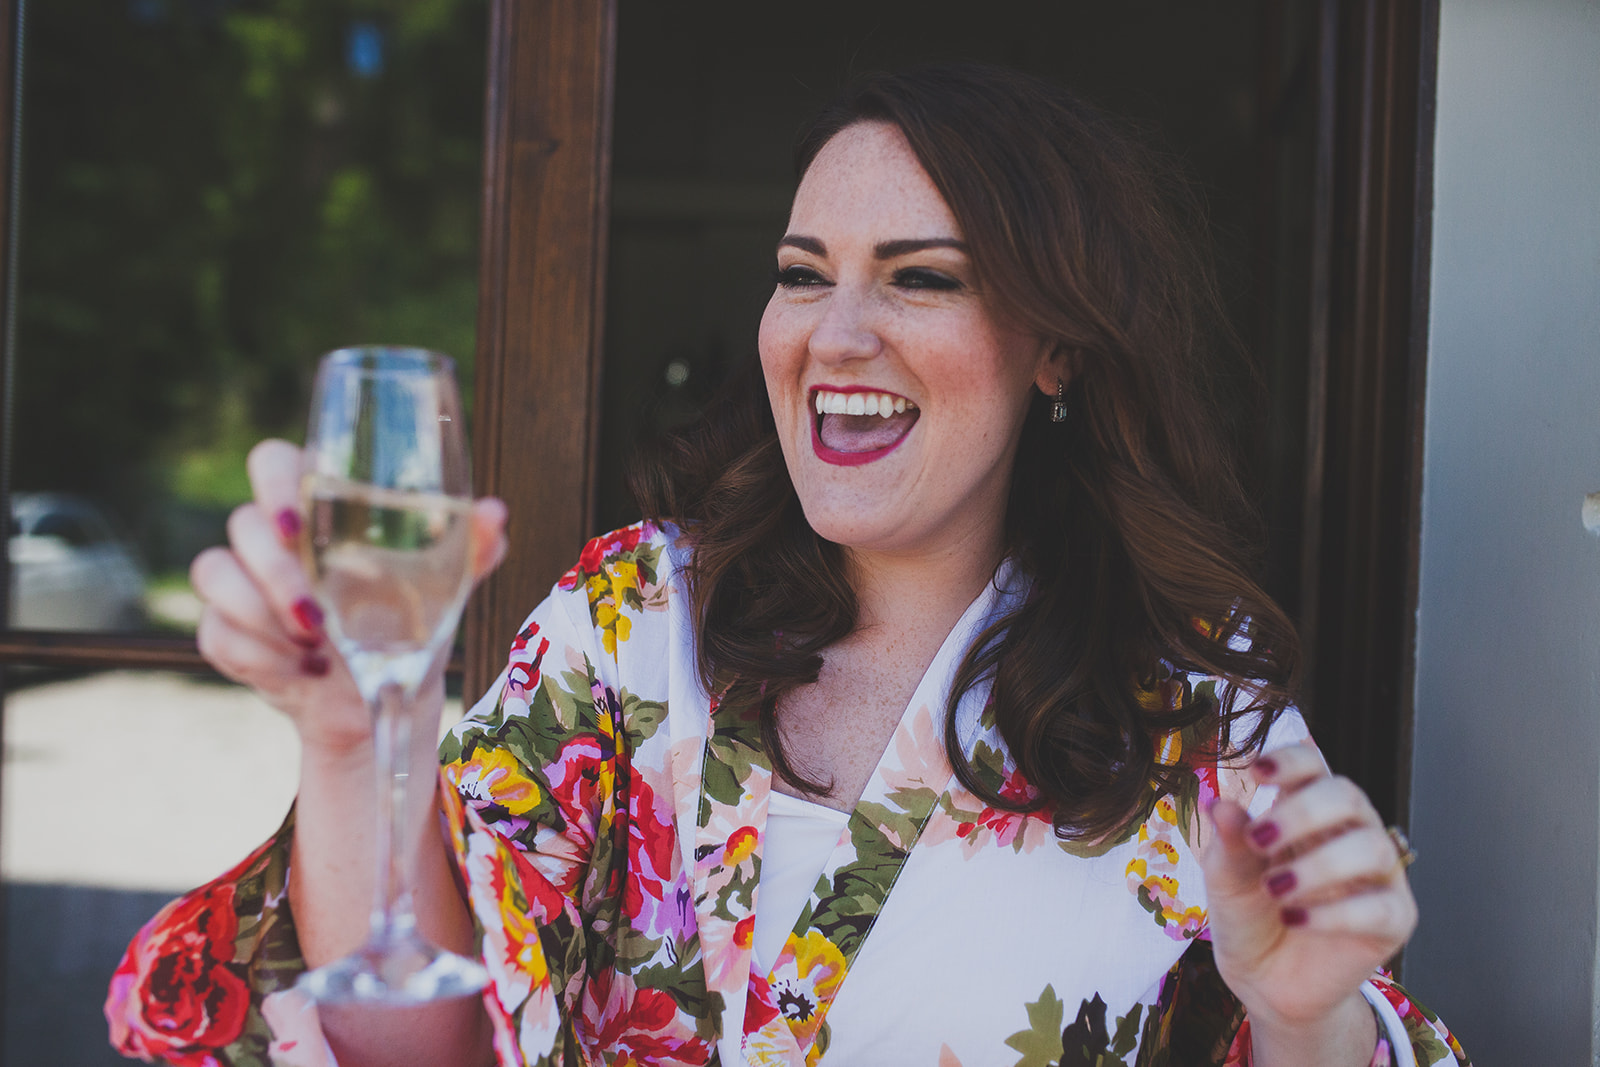 a bride looks happy and holds a glass of champagne. destination creative wedding photography italy. stop motion wedding films uk